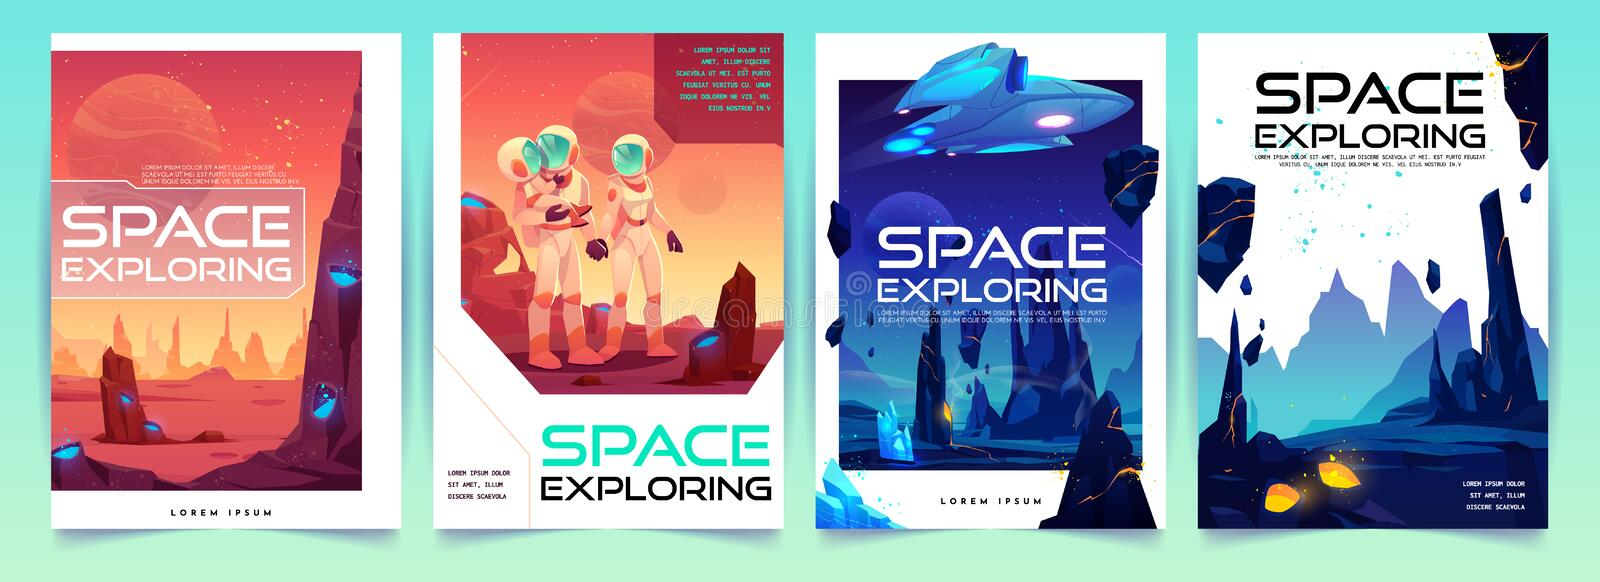 Space exploring banners set with alien landscape stock illustration